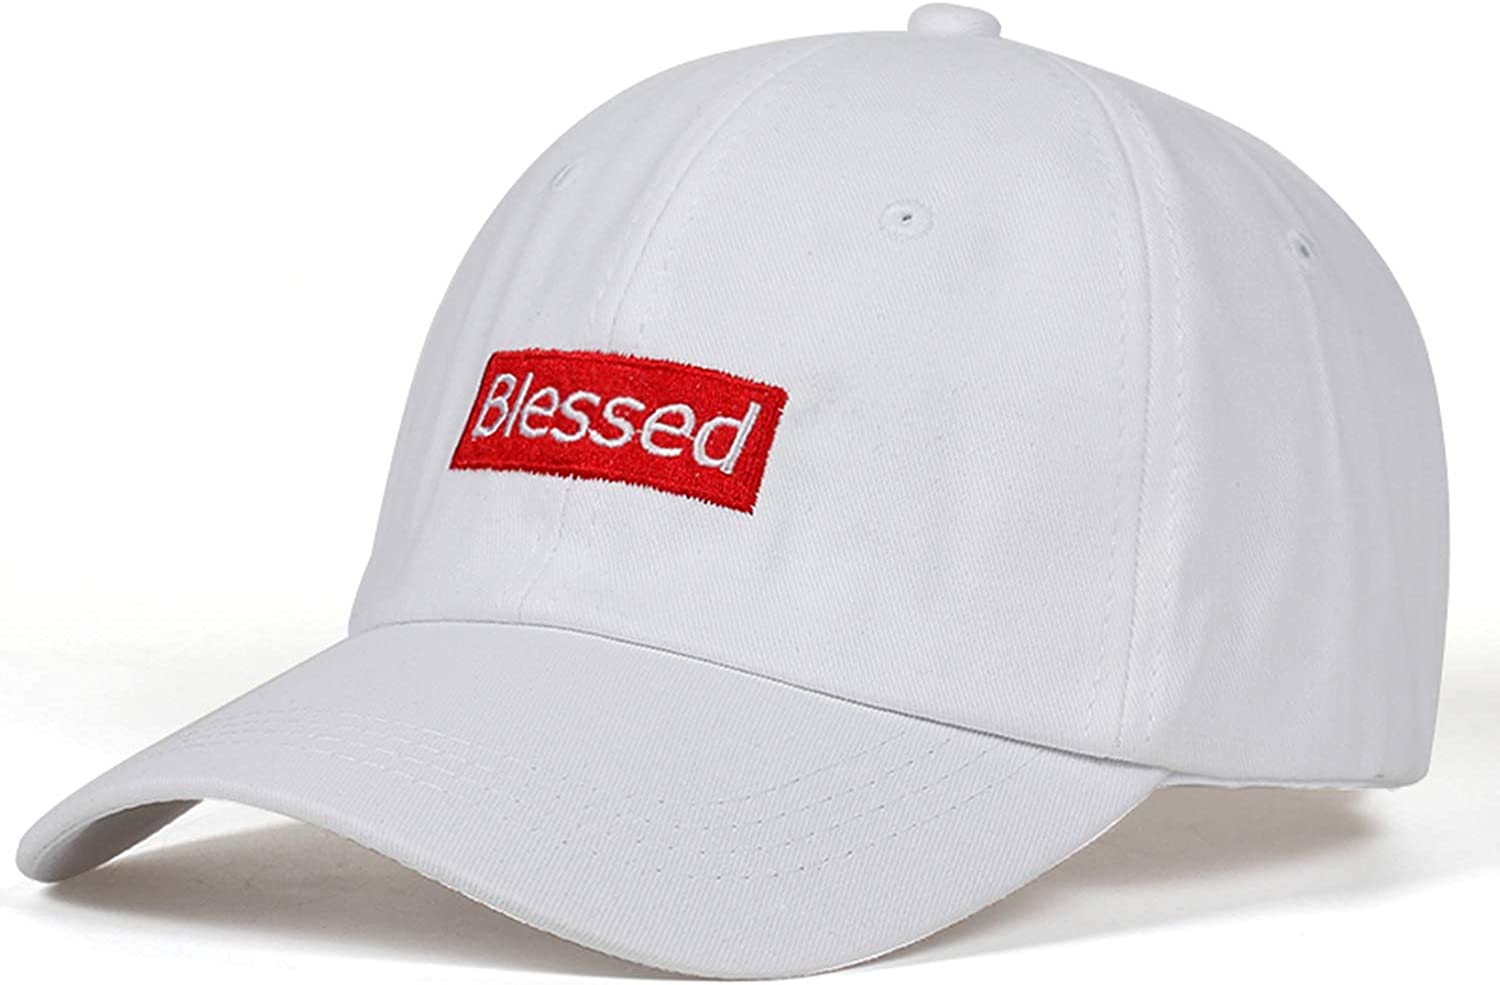 NAAO New Blessed Embroidered Dad Cap Adjustable Style Unconstructed Baseball Cap Men Women Fashion Cap Bone Garros